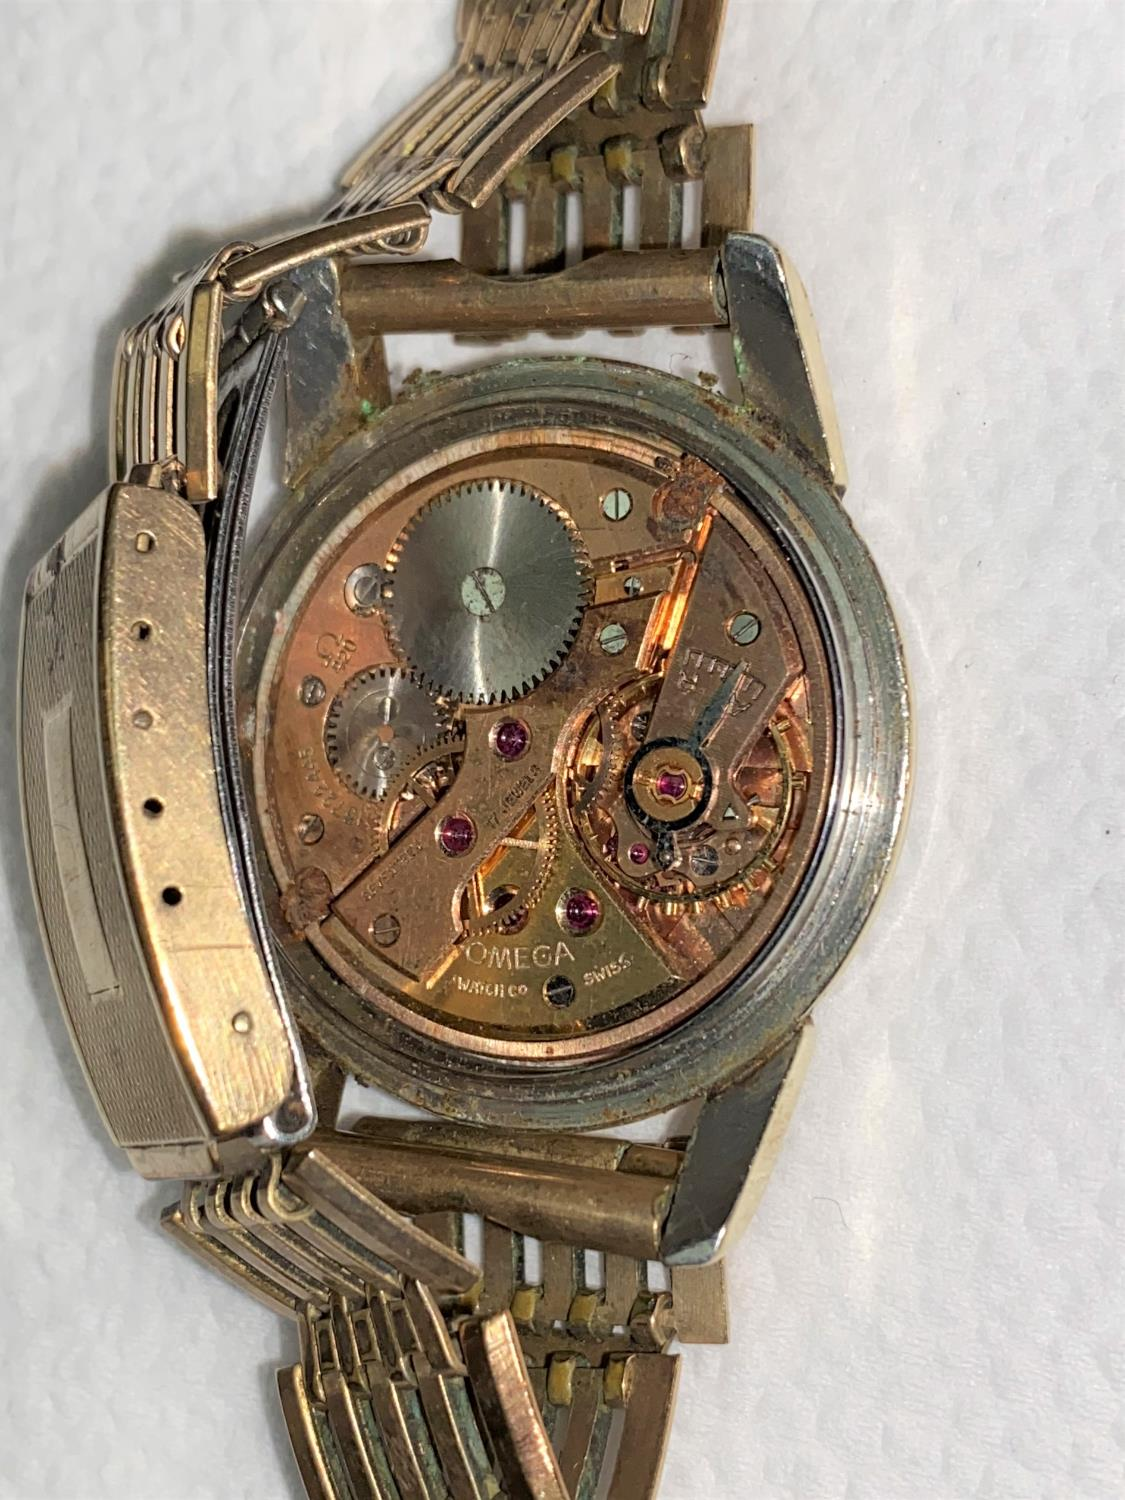 A vintage Omega Seamaster 17 jewel wristwatch with baton numerals and center seconds hand, no - Image 3 of 4